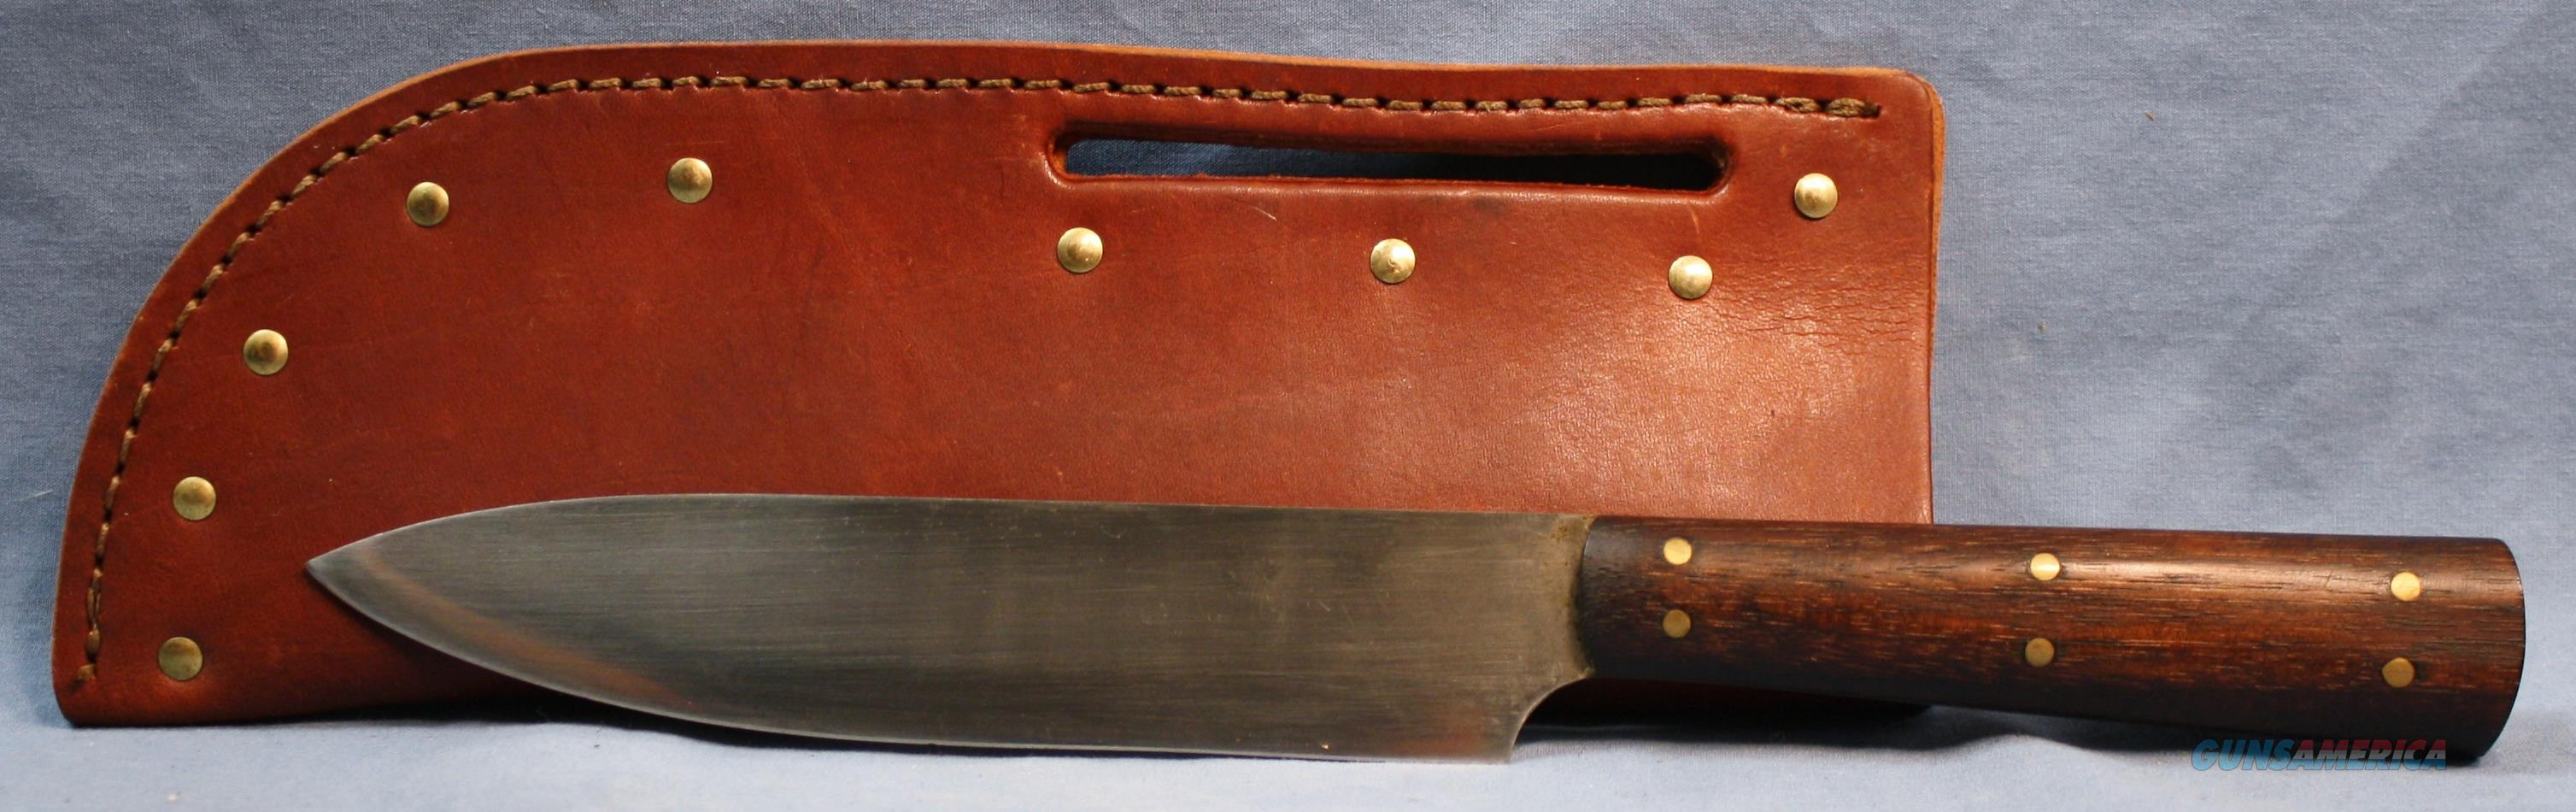 Riflemans knife replica with Leather Sheath   Non-Guns > Knives/Swords > Knives > Fixed Blade > Imported